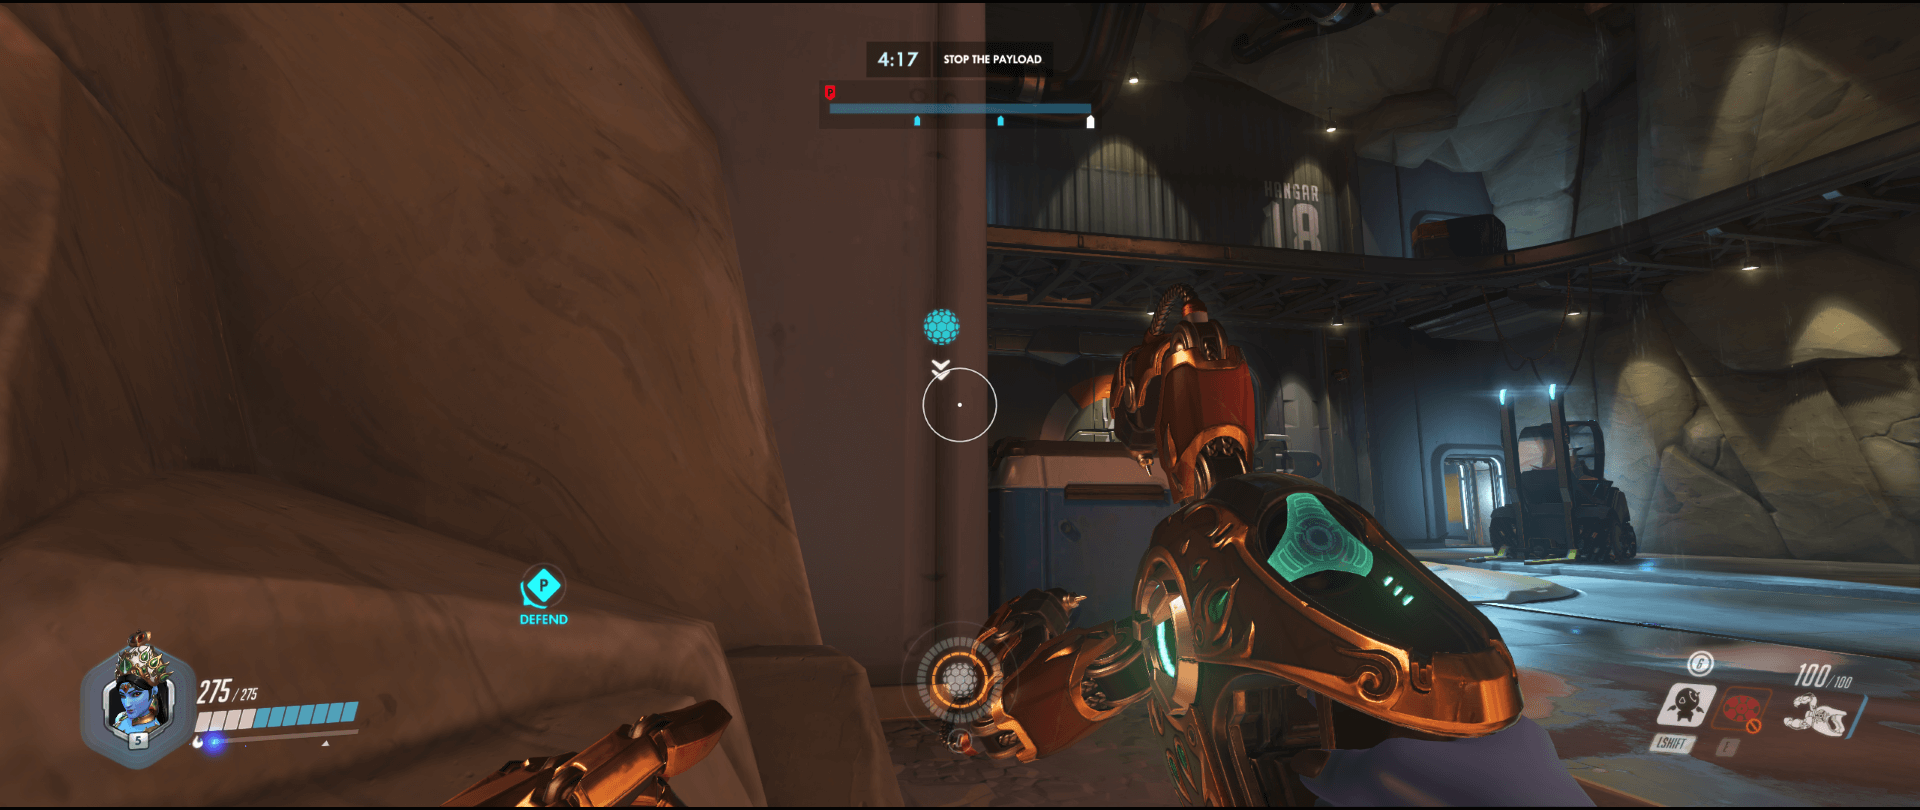 Symmetra shield generator spot Watchpoint Gibraltar main first point range.png